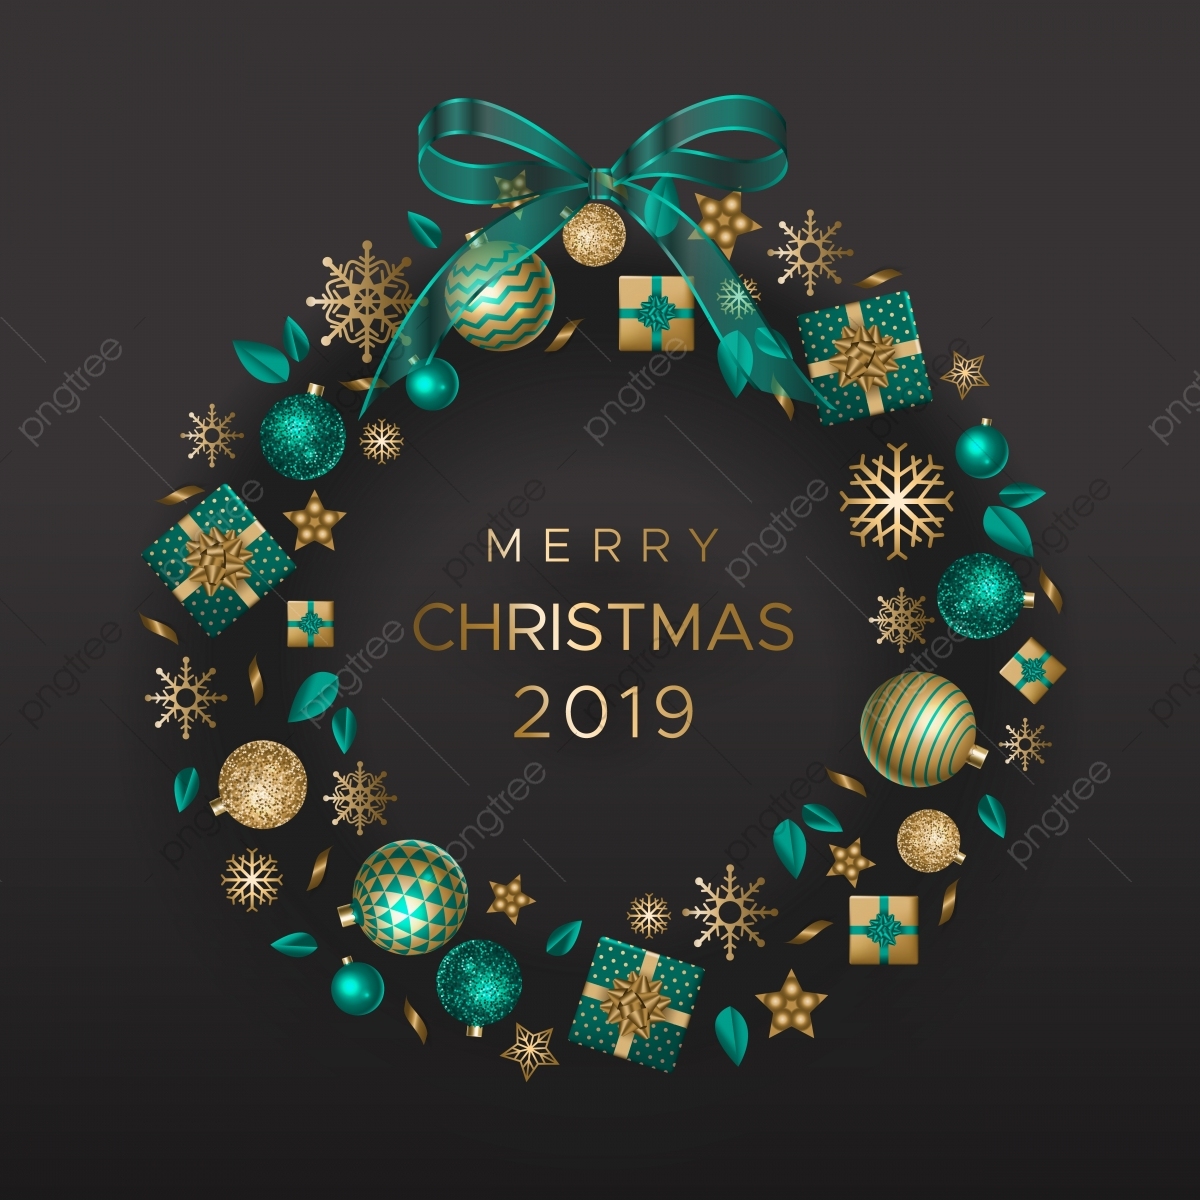 Holiday Wreath Png Vector Psd And Clipart With Transparent Background For Free Download Pngtree